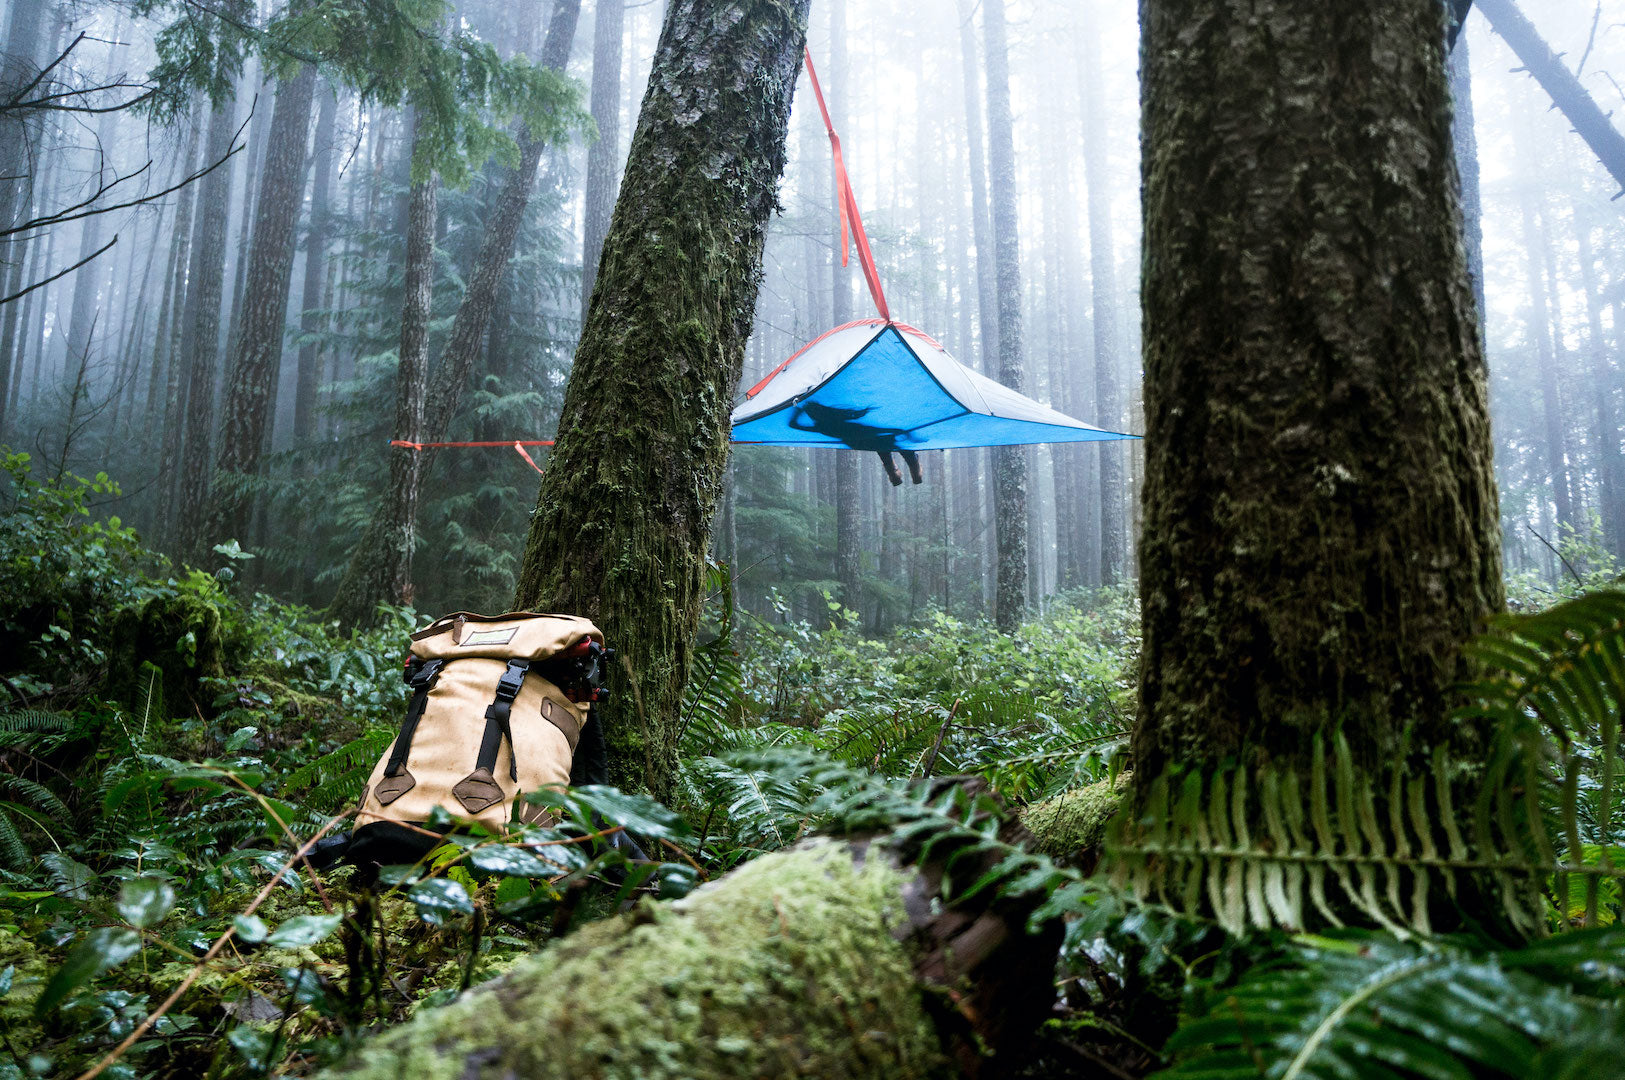 2-Person Hammock Tent for Backpacking